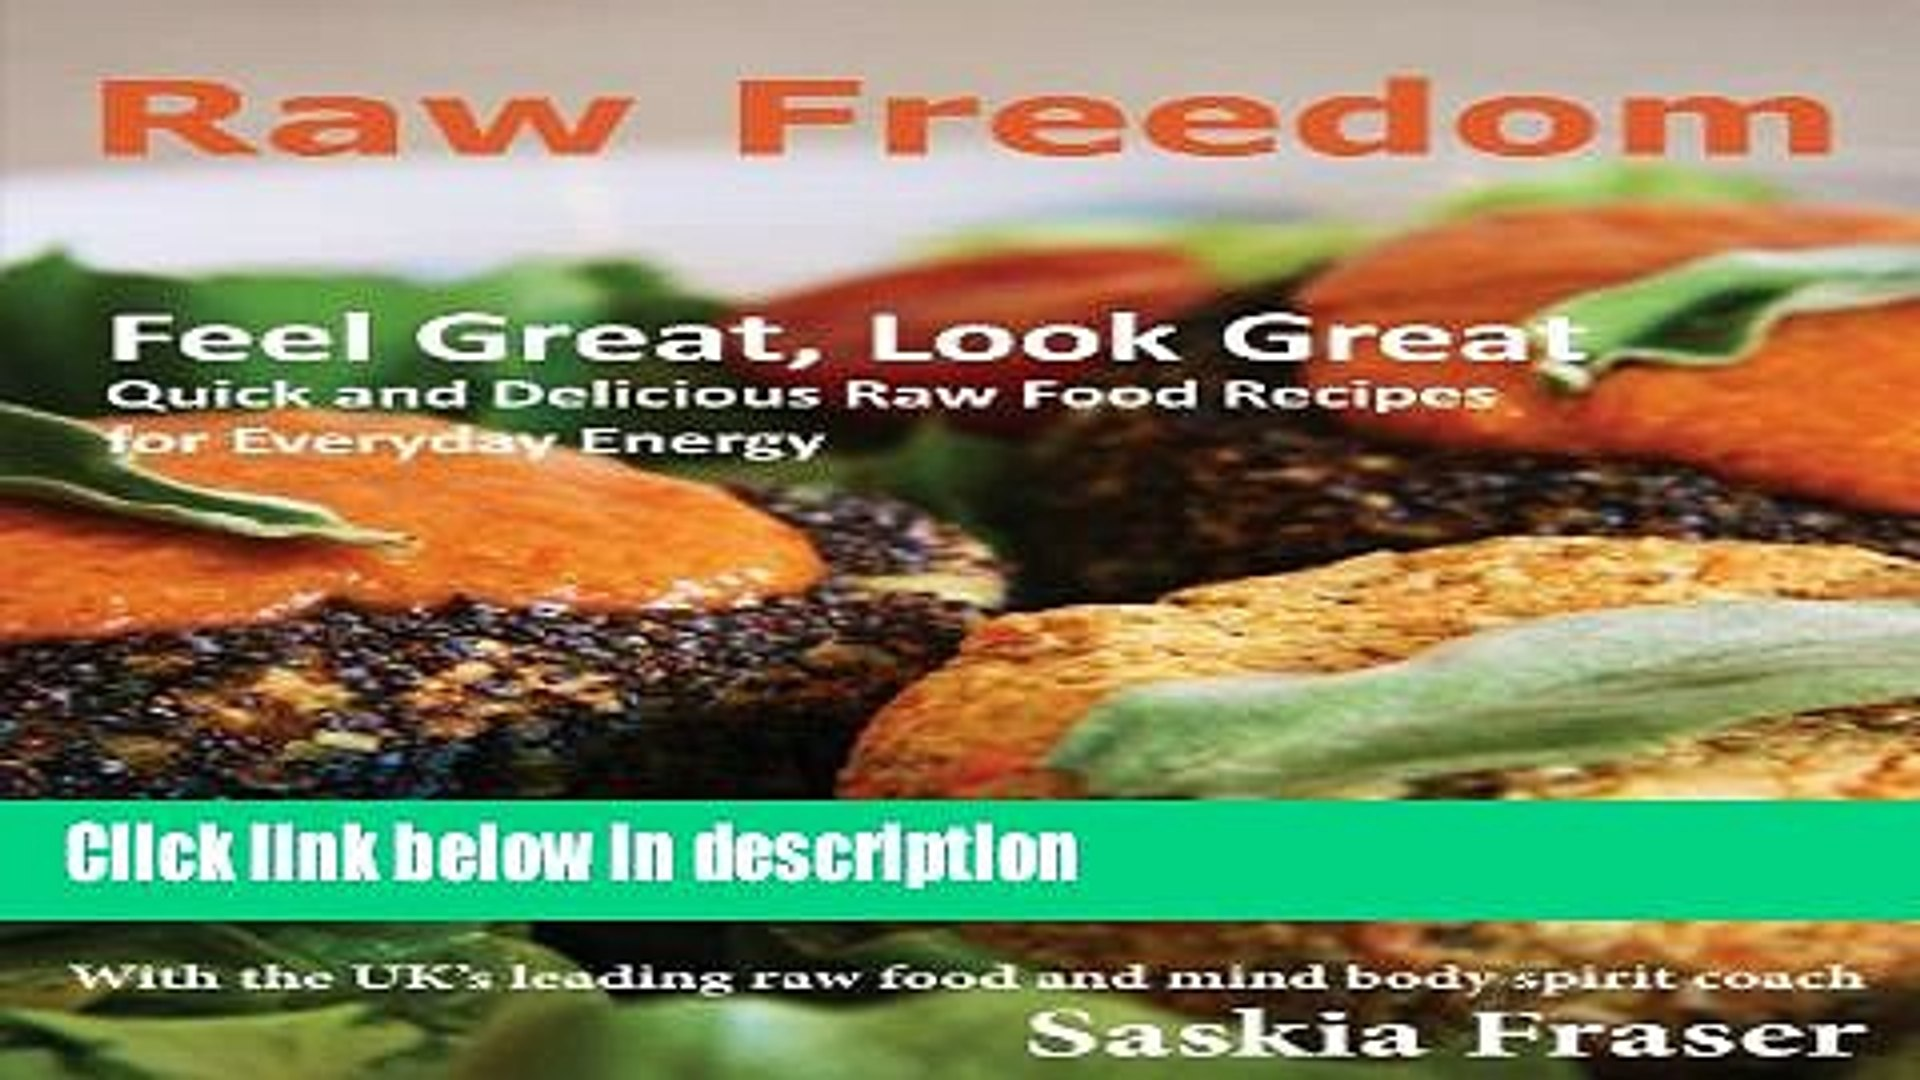 Download Raw Freedom Quick And Delicious Raw Food Recipes For Everyday Energy Online Books